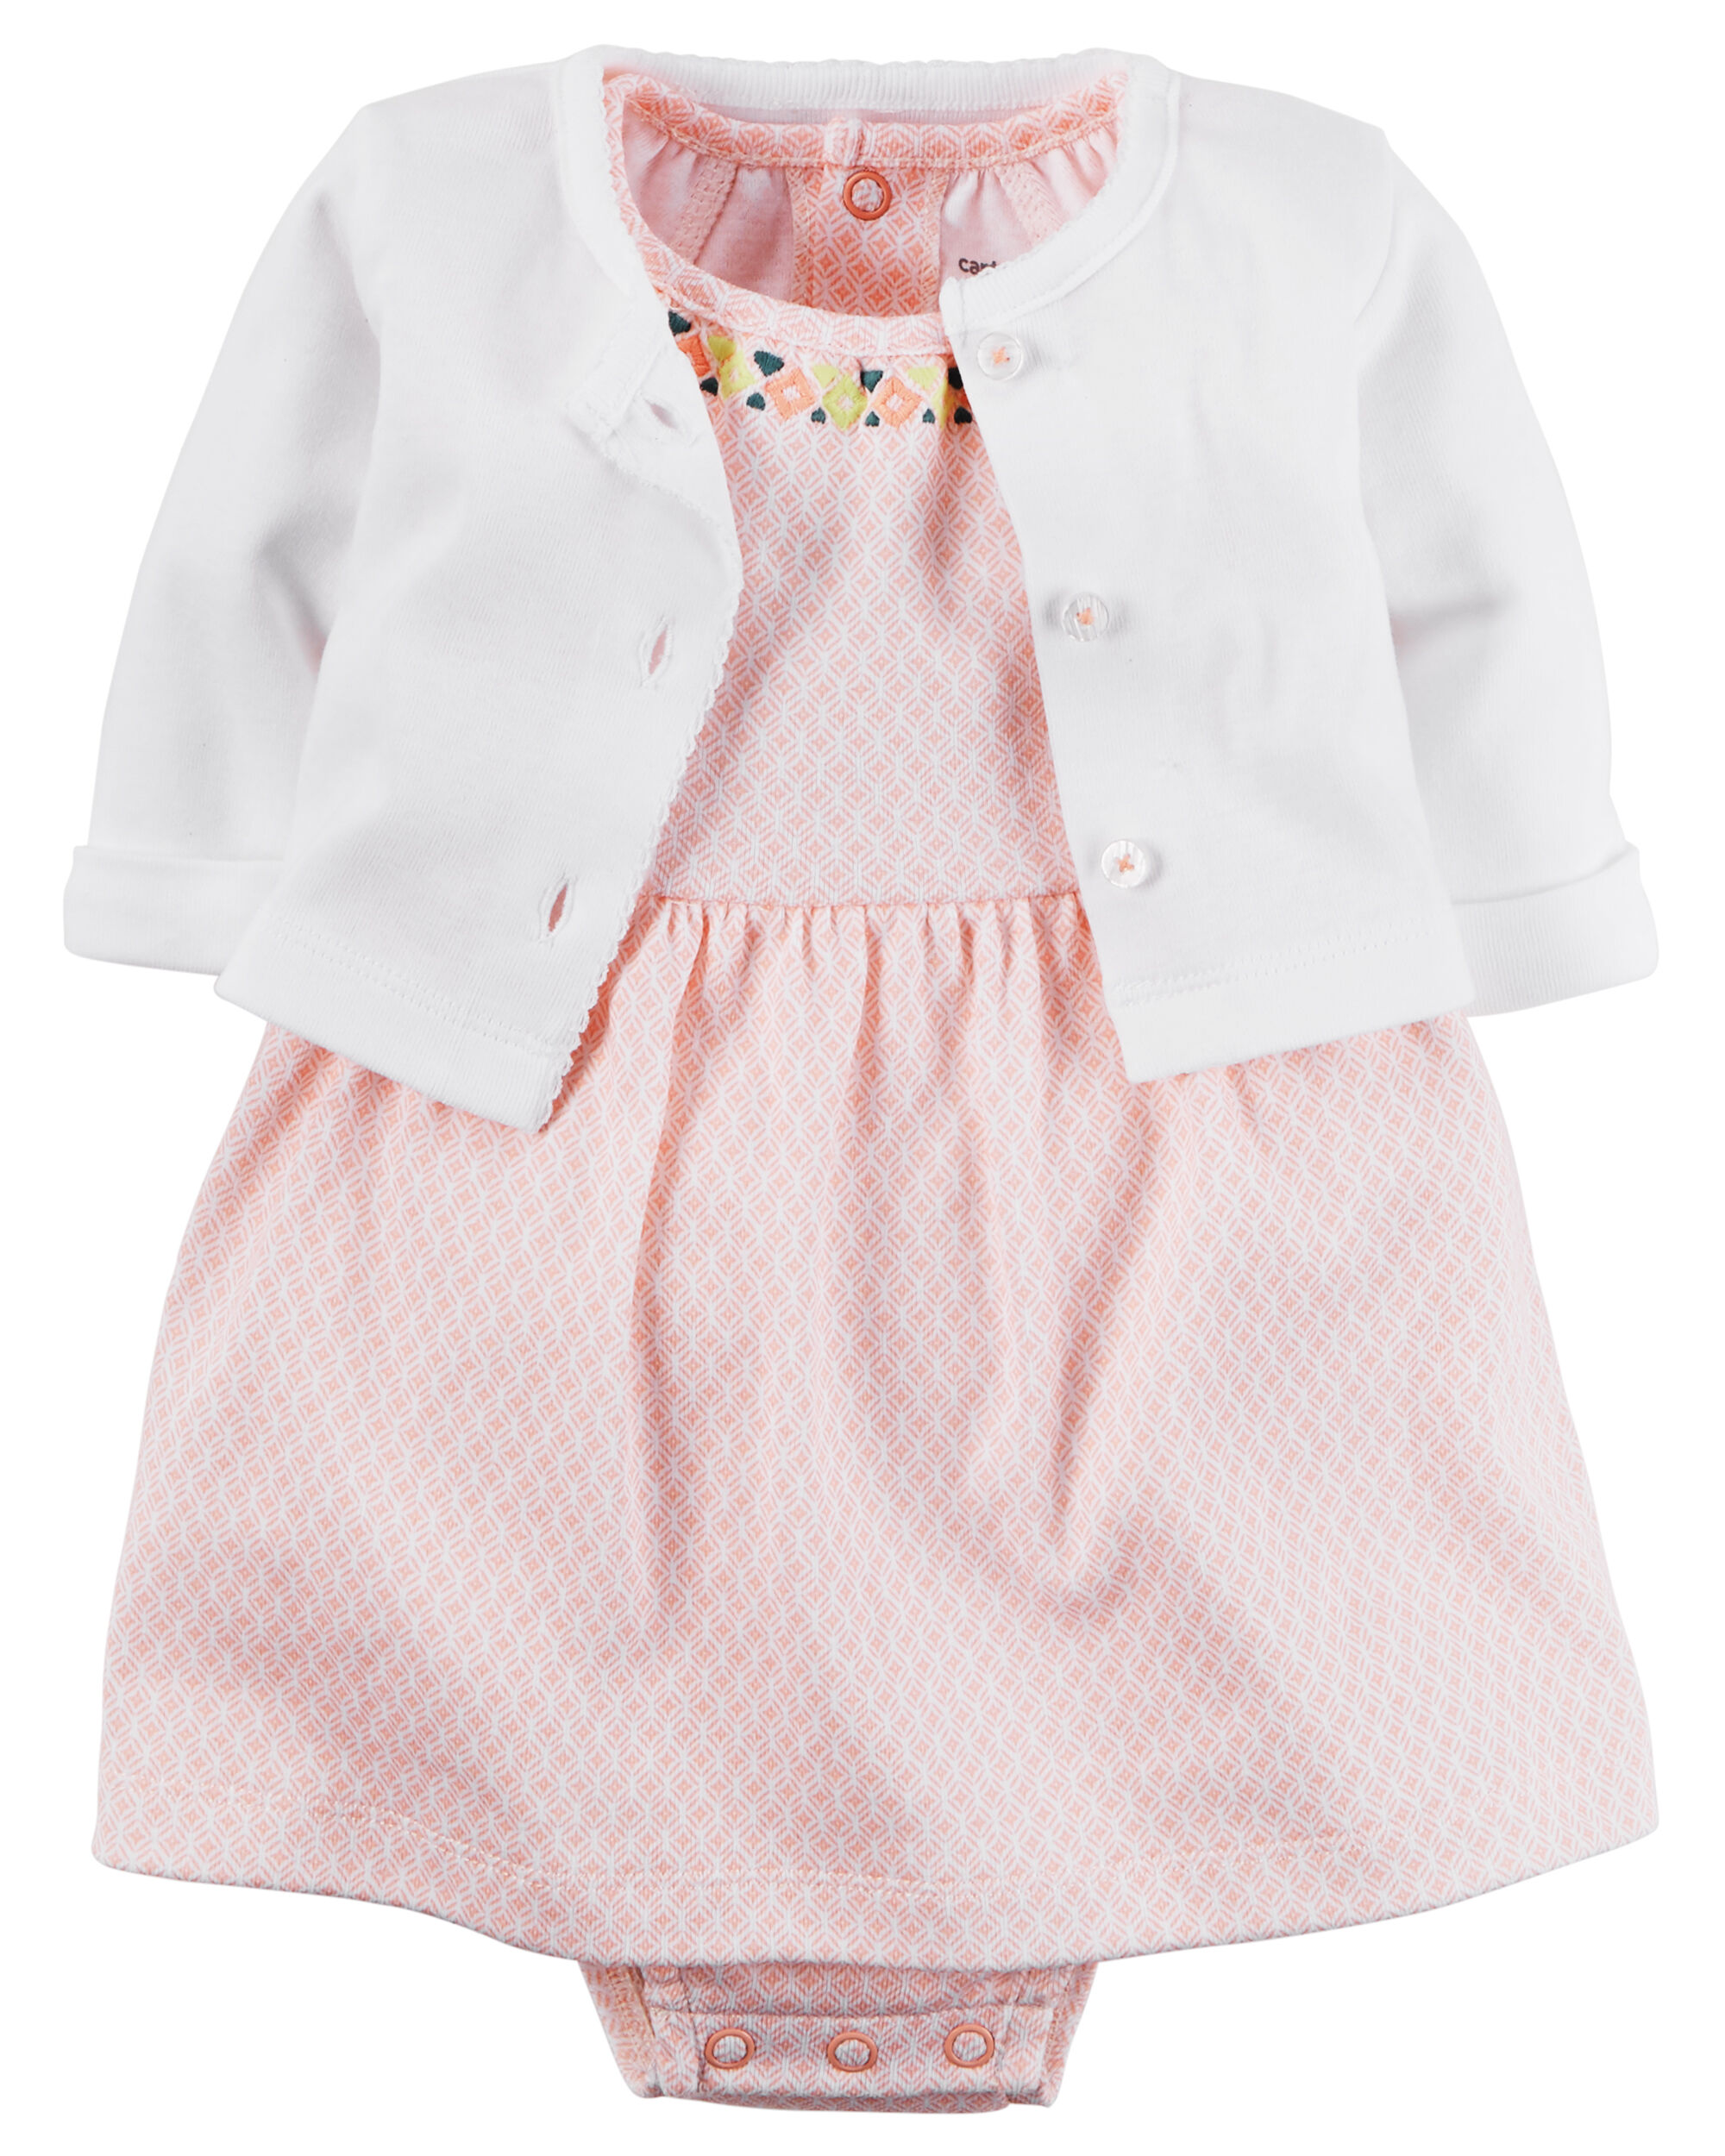 Next Clearance Baby Clothes